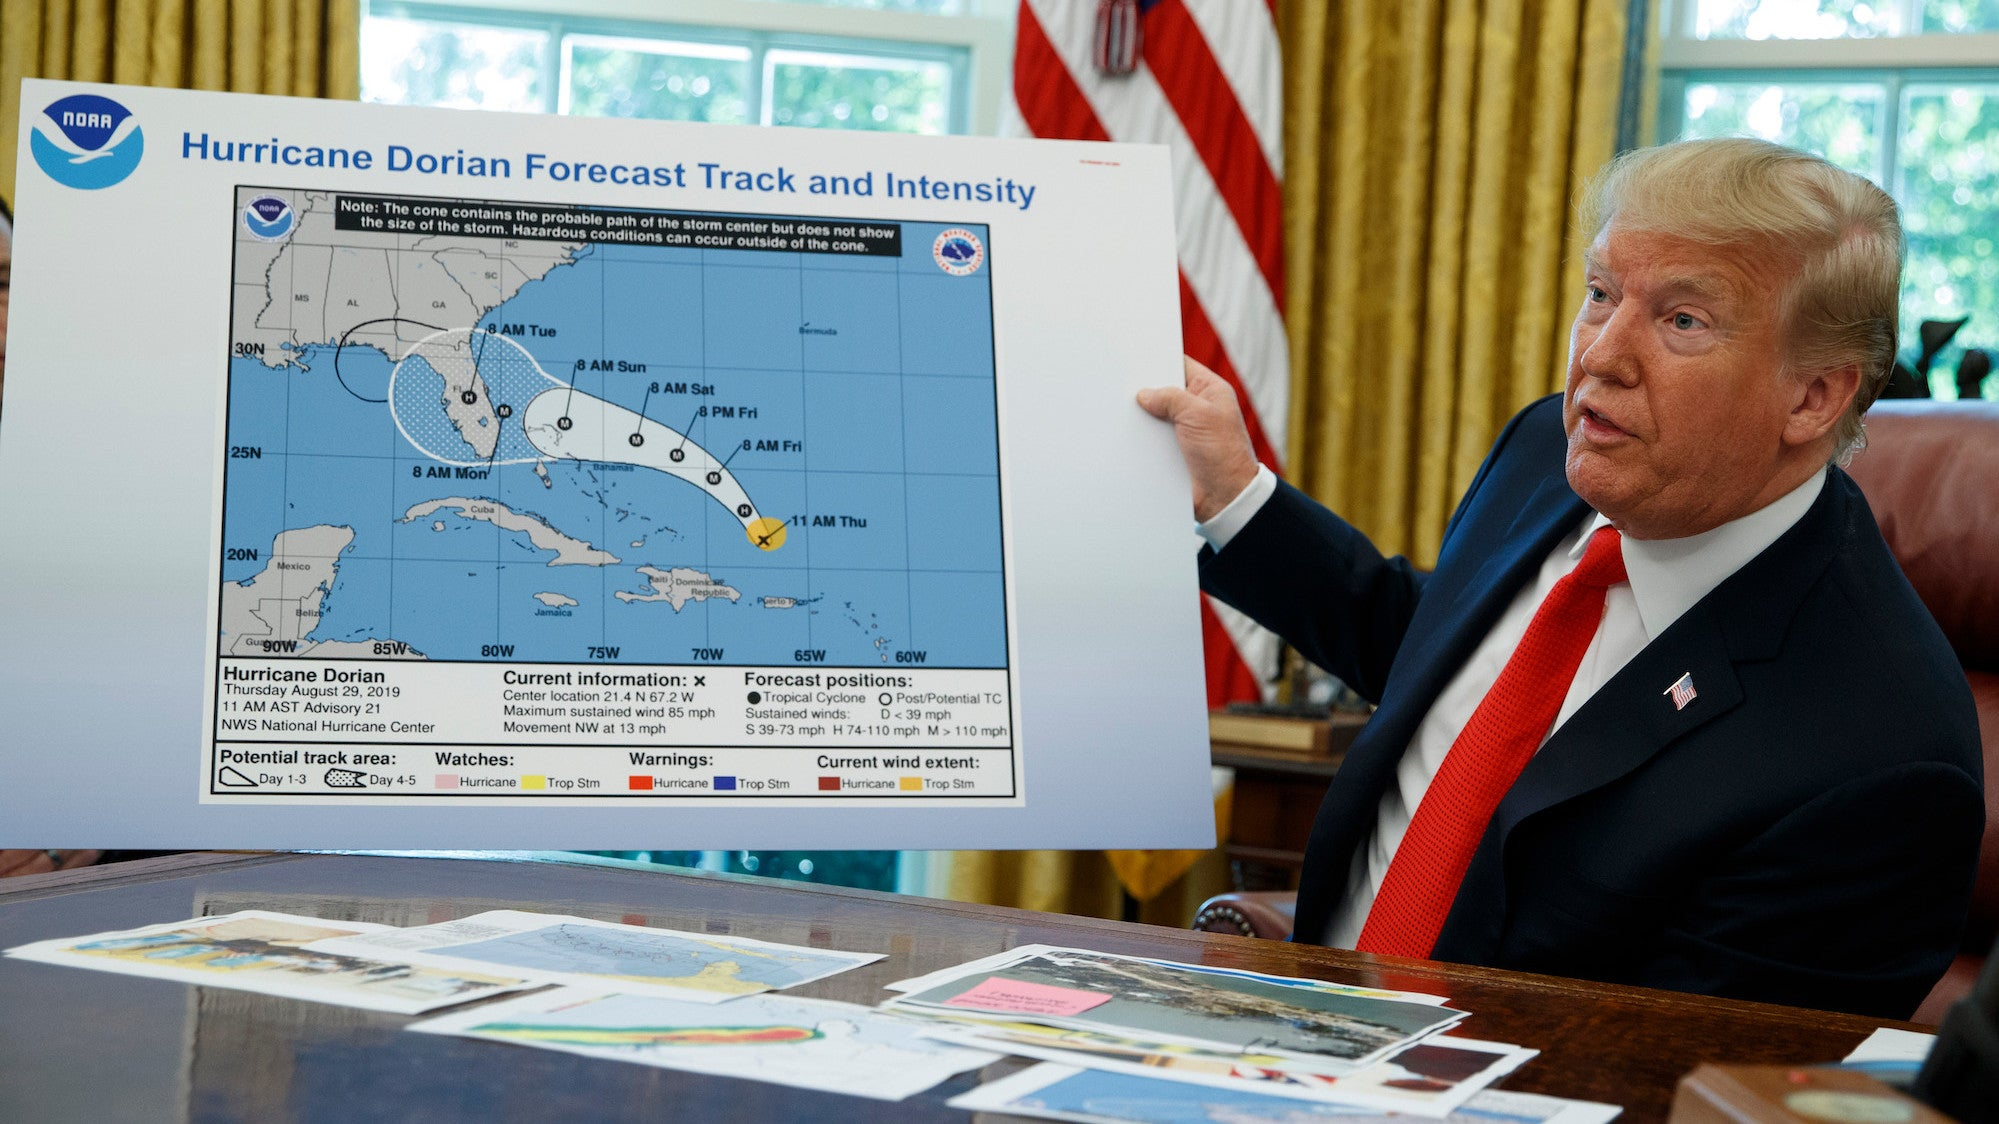 Hurricane Dorian Didn't Threaten Alabama, You Say? Clearly, You Haven't Seen Trump's Sharpie Drawing